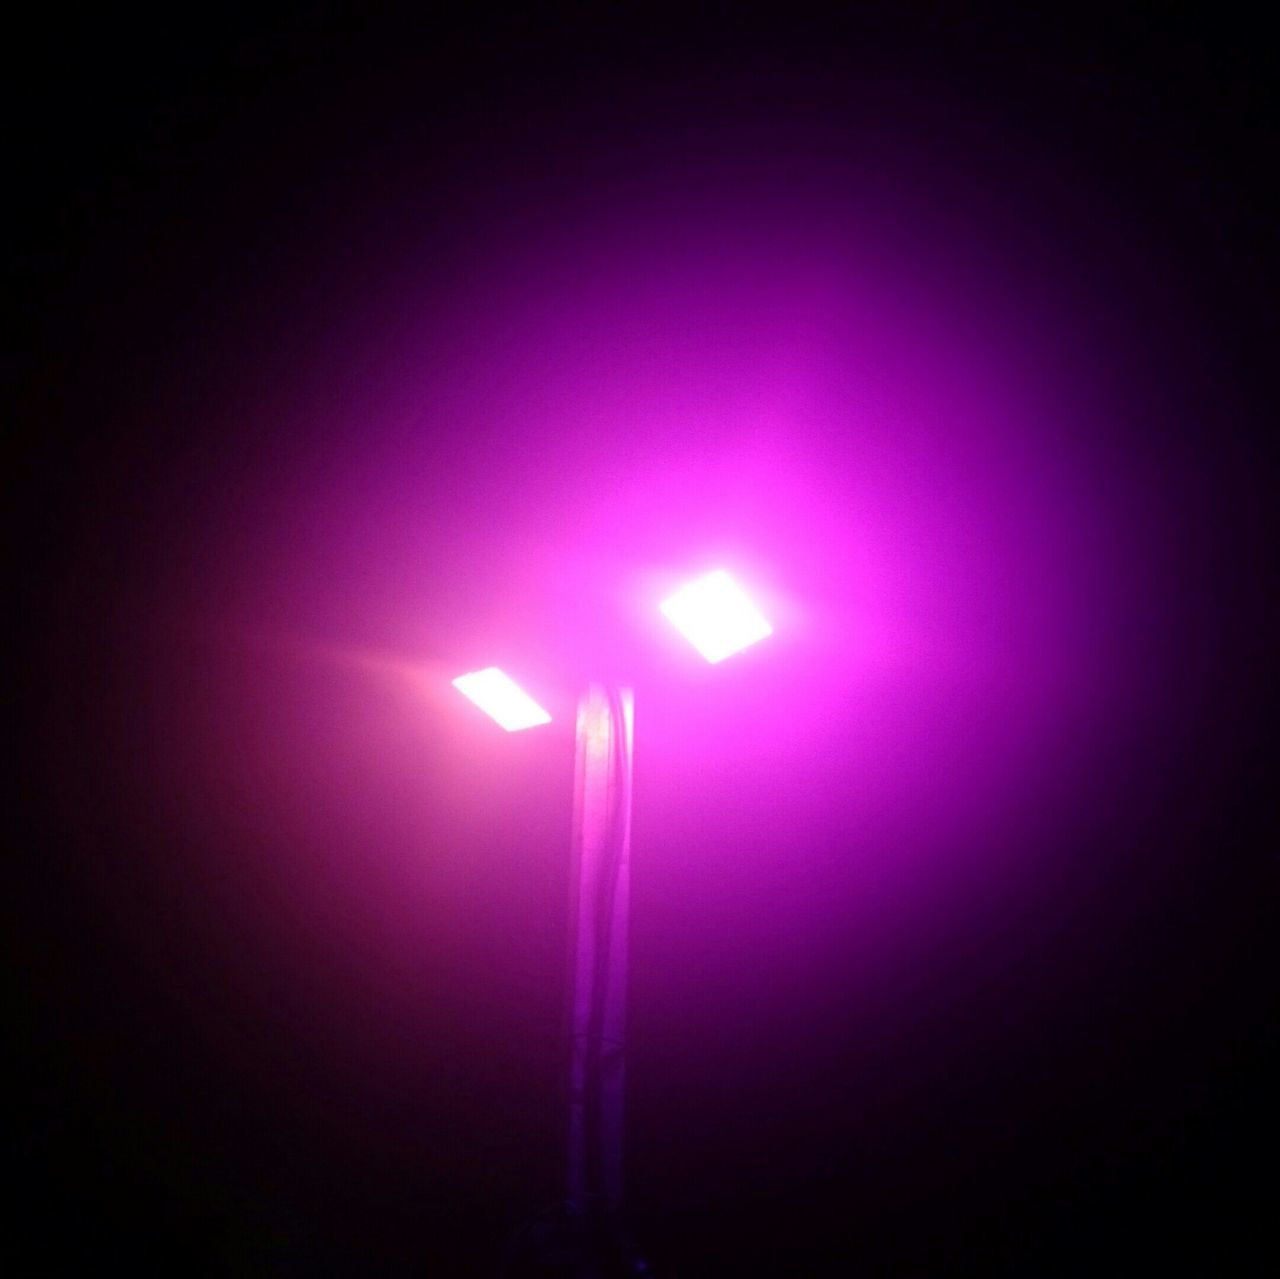 Night Night, Sleep Tight Lamp Lamps And Lights. Lamps At Night Lamp Lovers Of The World Unite Lampes Lampen Lamp Purple Lights Light And Shadow Violet Sky  Violet Viollett Violet Light Colors Farbrausch Farbgefühle Farbwolke Farbe Electric Lamp Electric Light Streetlight Streetlamp Streetlamps